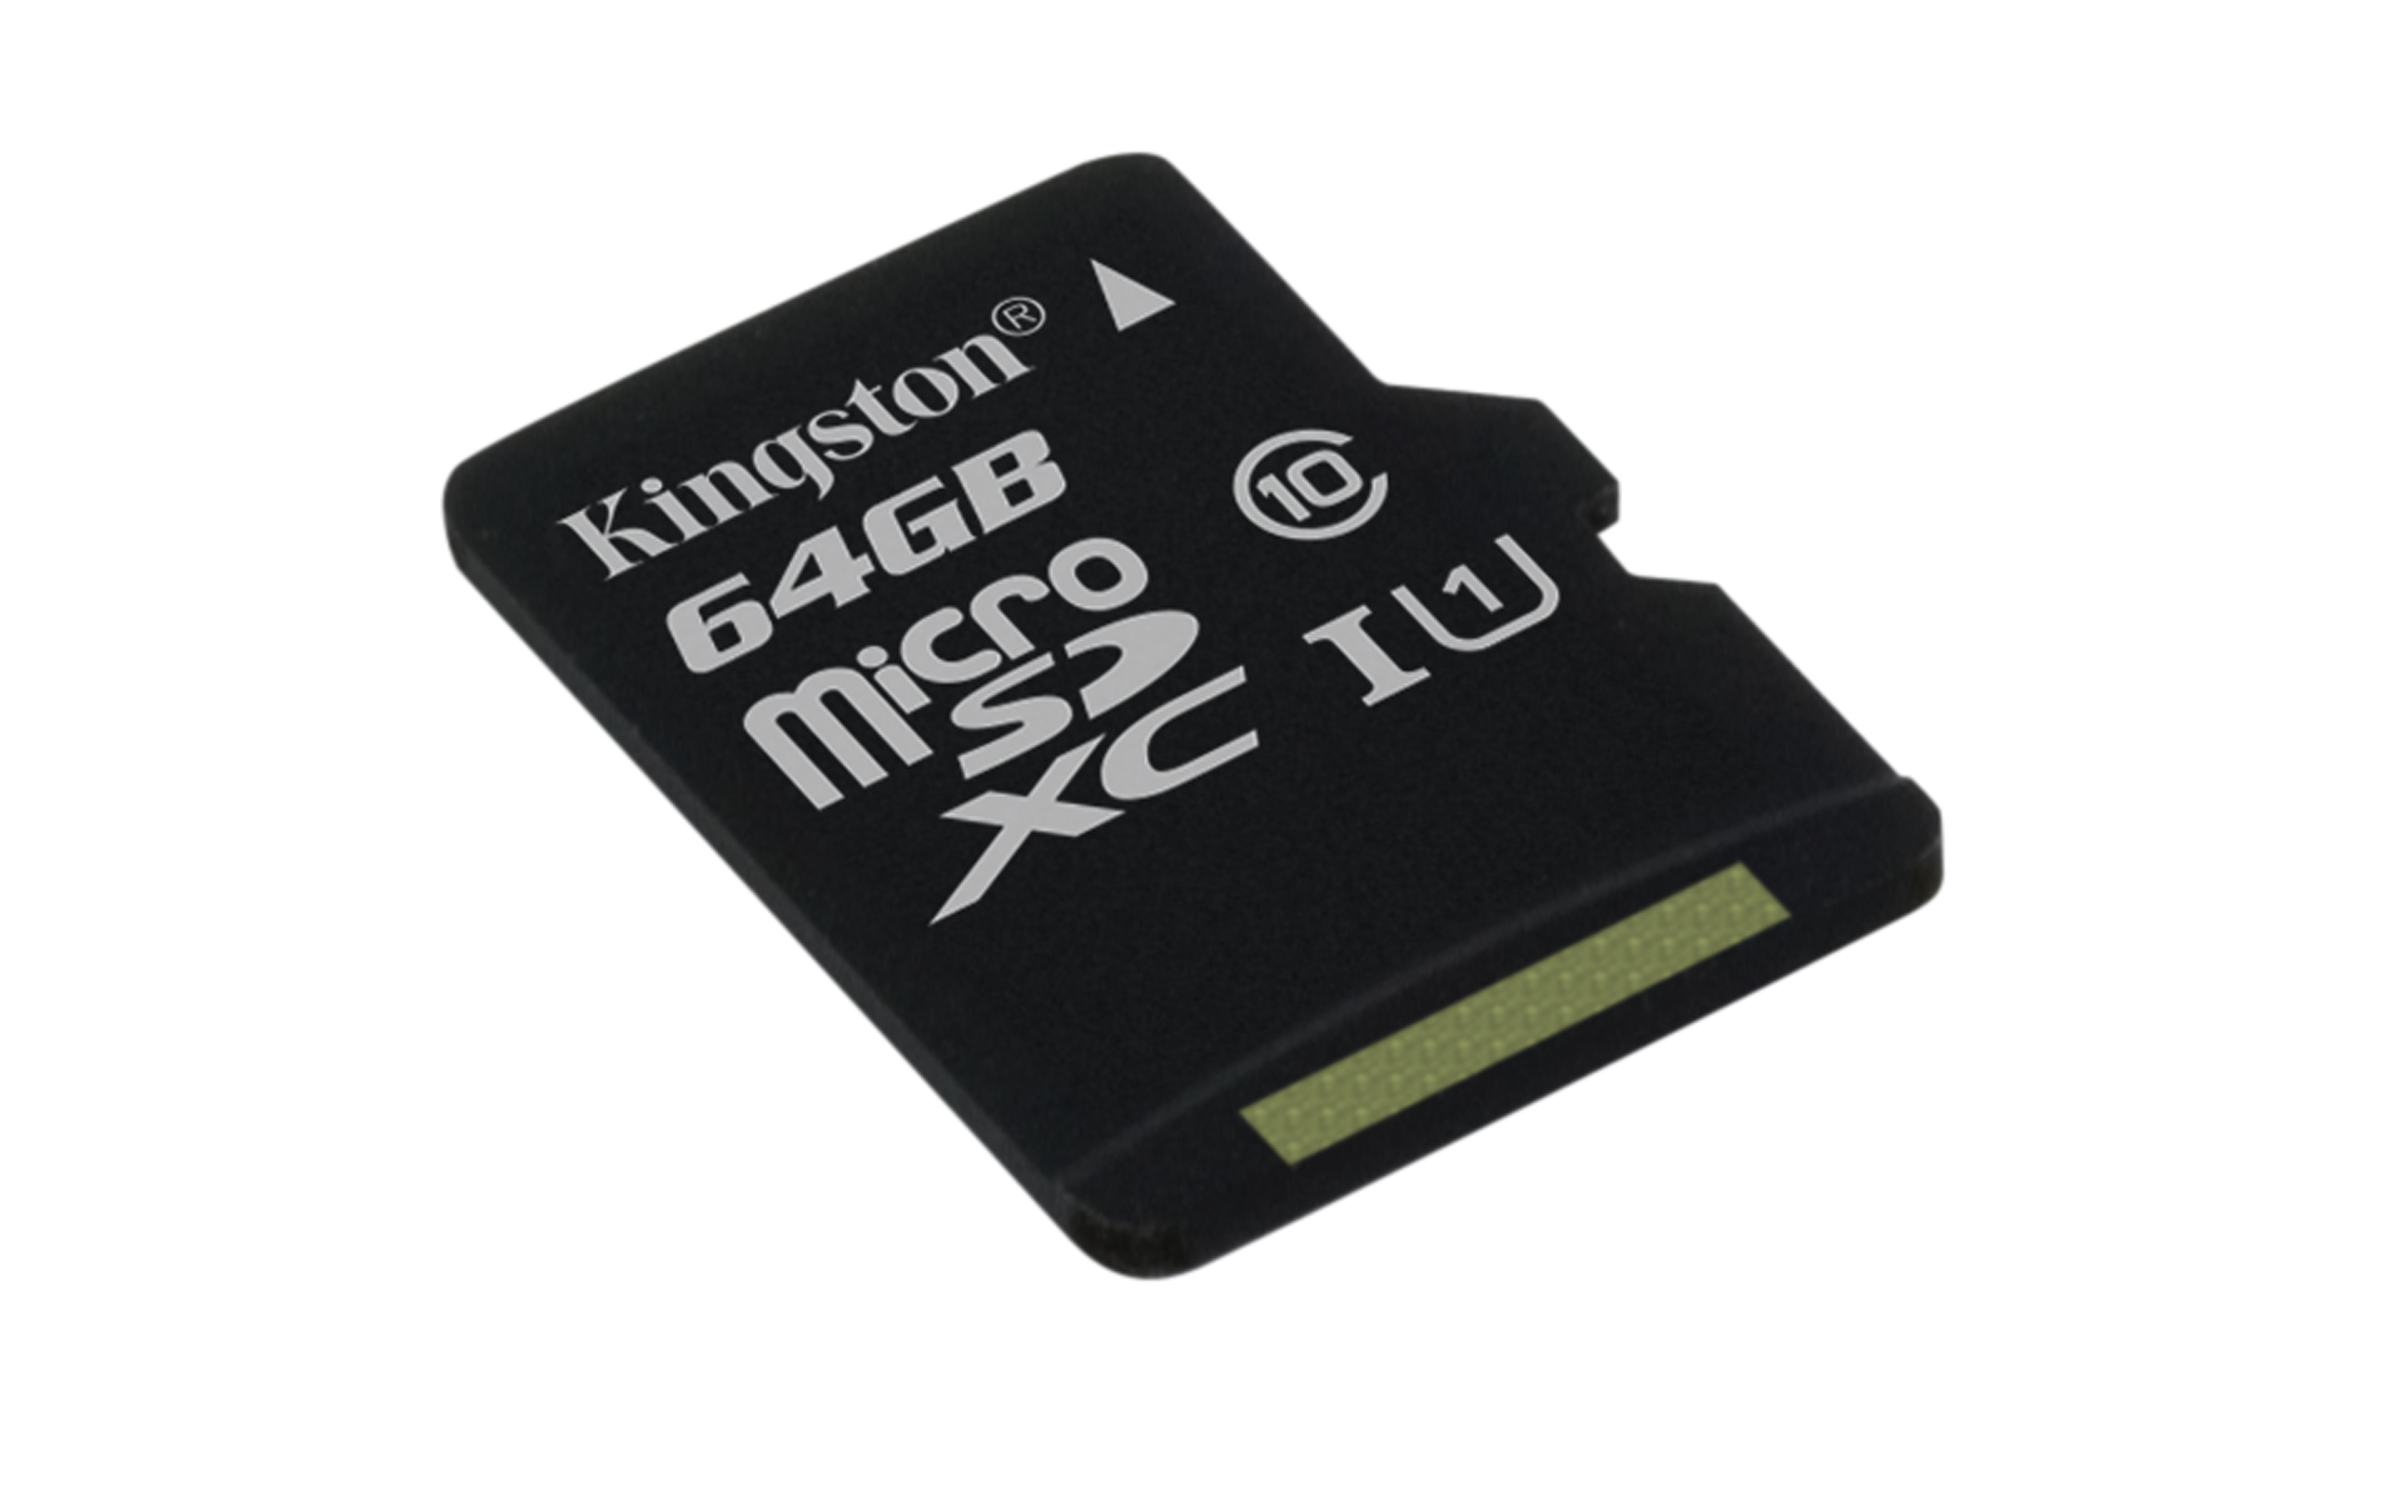 KINGSTON 64GB microSDHC Memory Card 45MB/10MBs- UHS-I class 10 Gen 2 - bez adaptéru